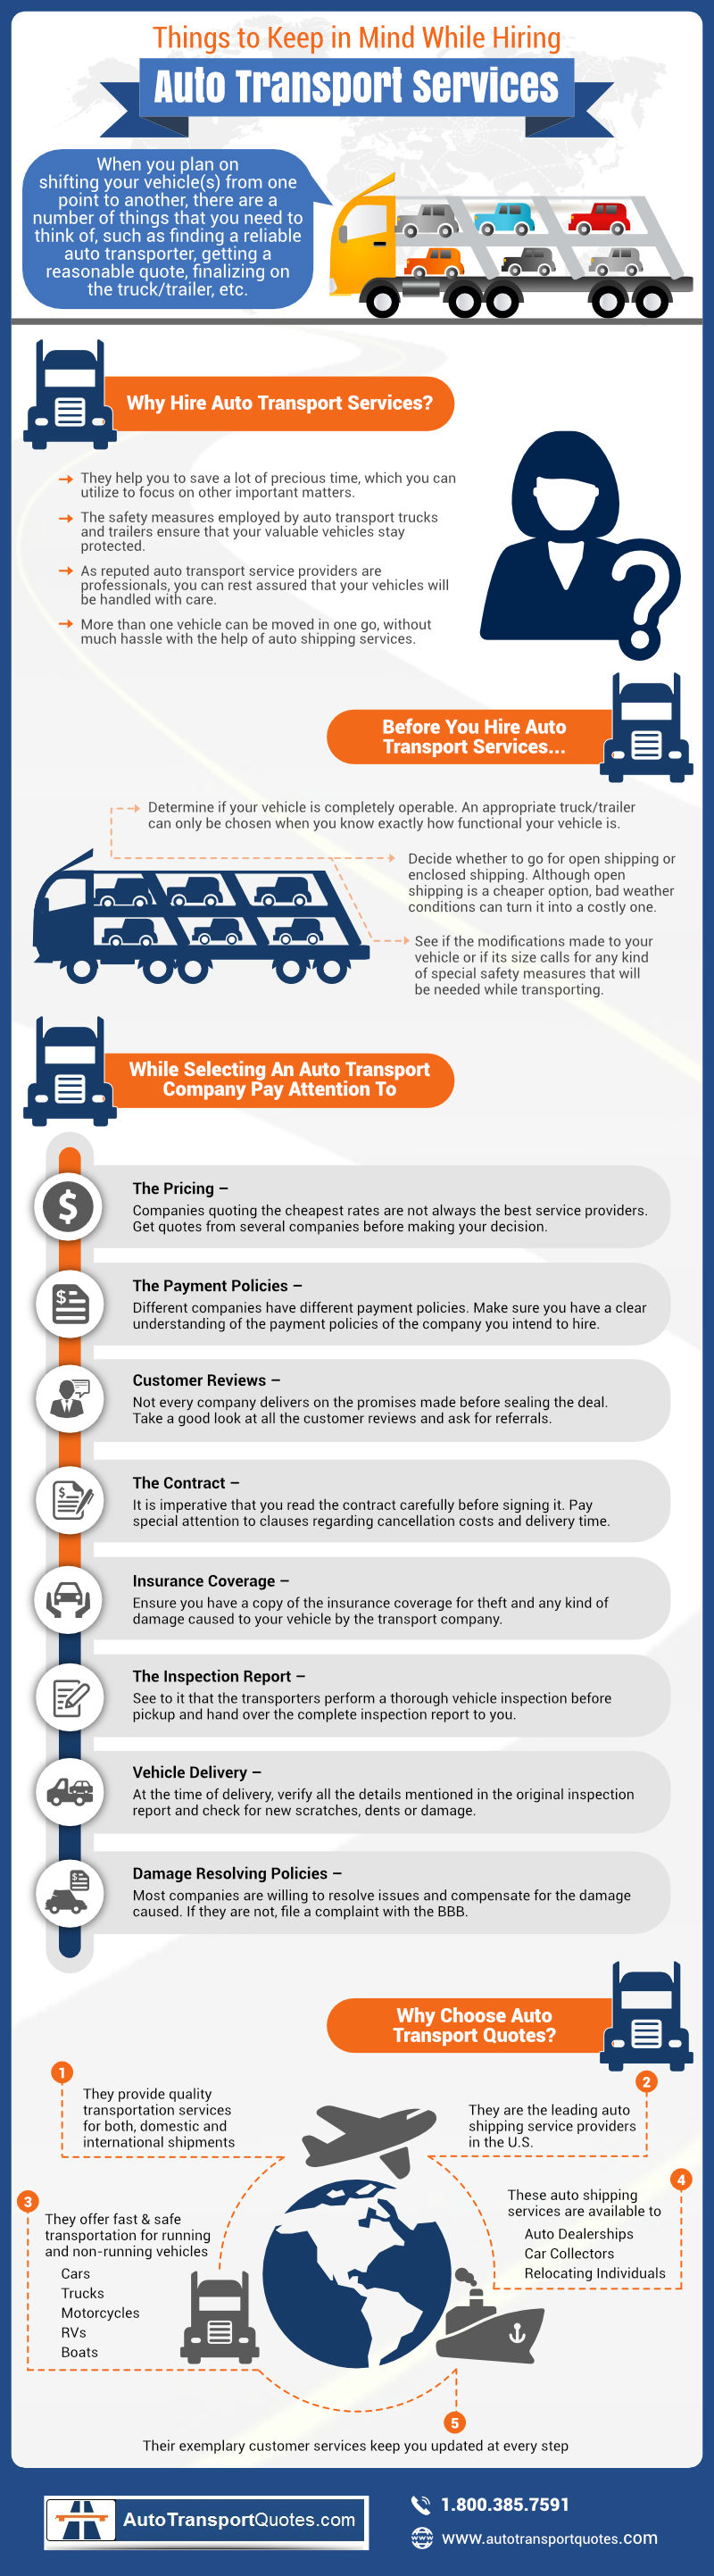 Auto Transport Quotes To Keep In Mind While Hiring Auto Transport Services